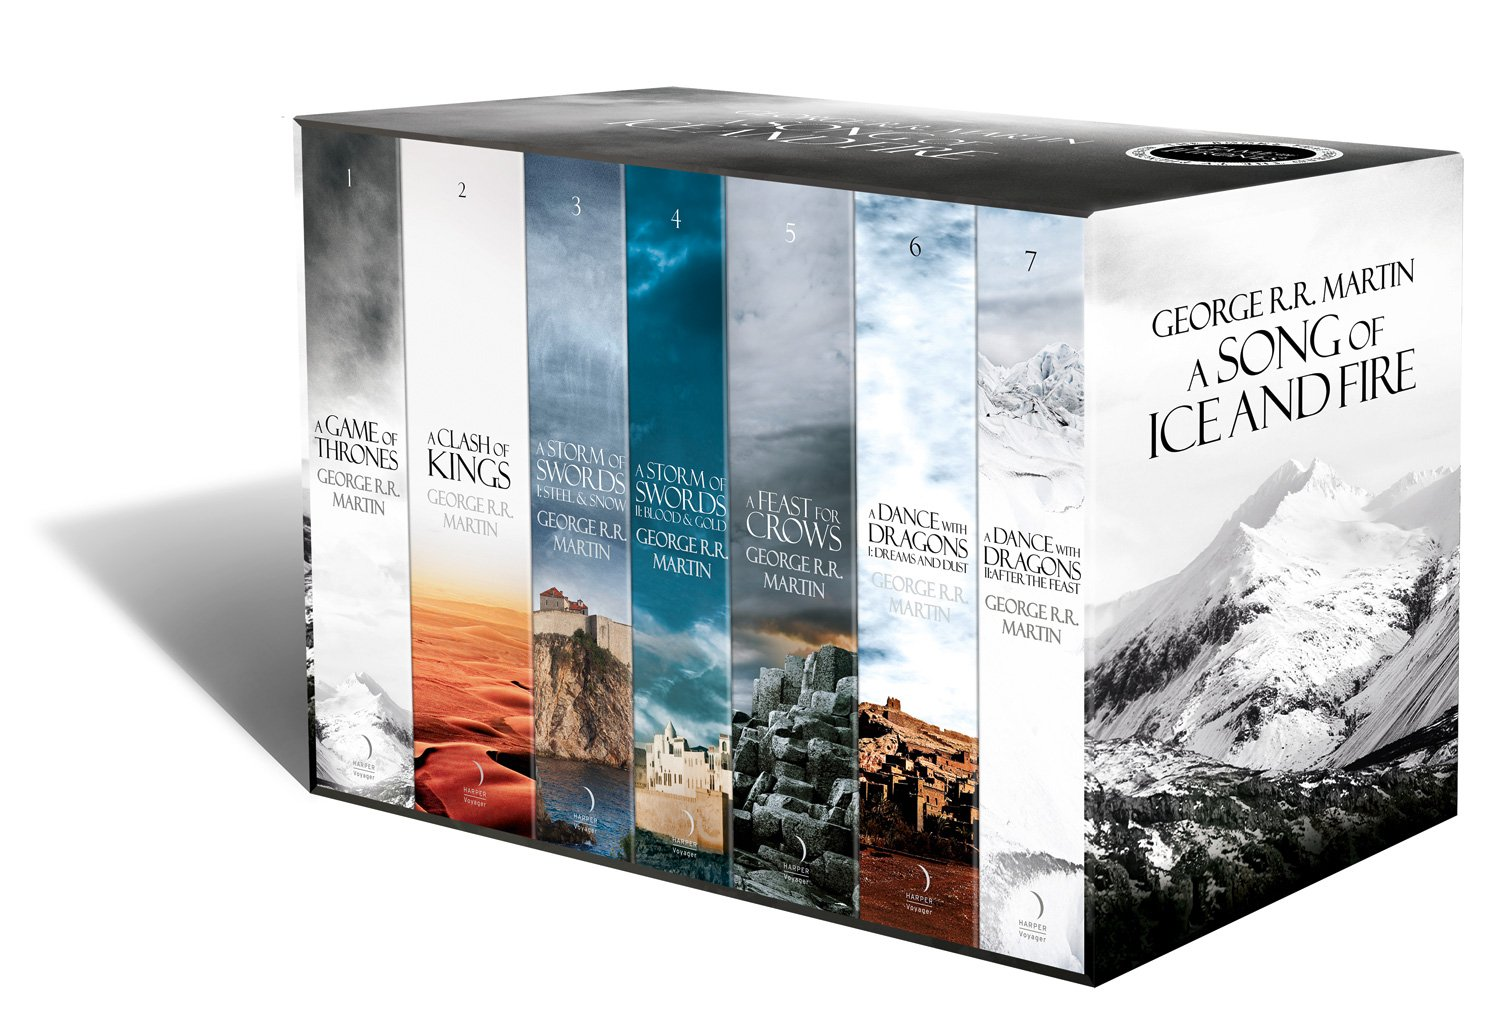 buy a song of ice and fire a game of thrones boxset the story buy a song of ice and fire a game of thrones boxset the story continues set of 7 books book online at low prices in a song of ice